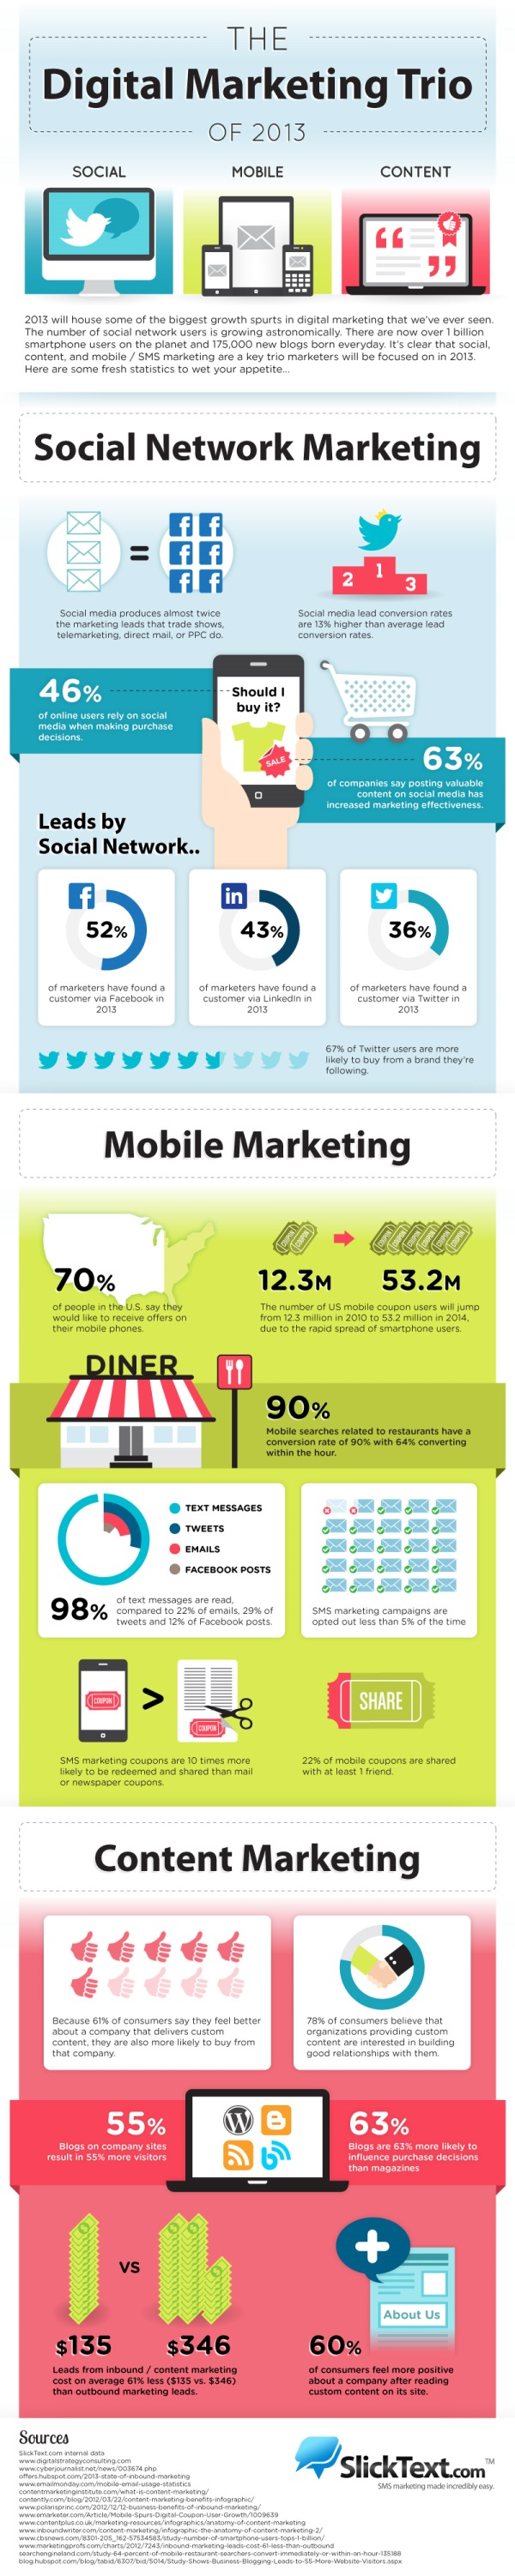 Digital Marketing Infographic 2